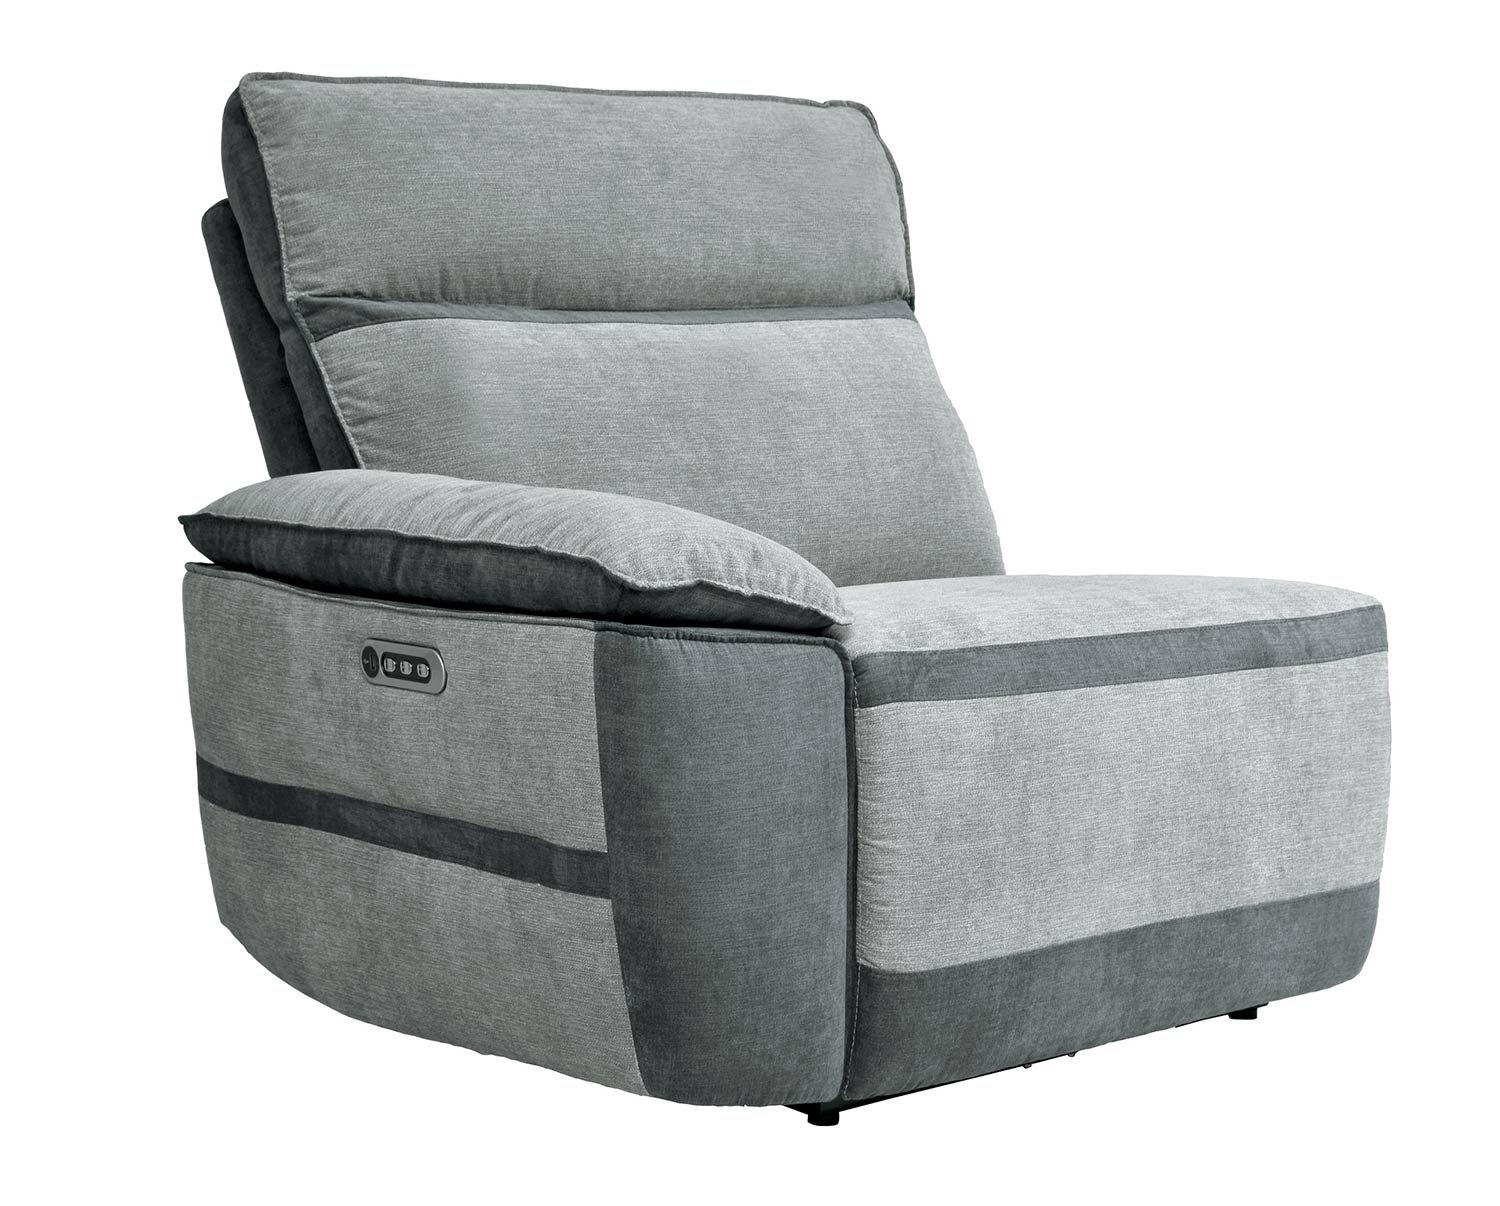 Homelegance Hedera Power Left Side Reclining Chair with Power Headrest and Power Lumbar Support - Gray